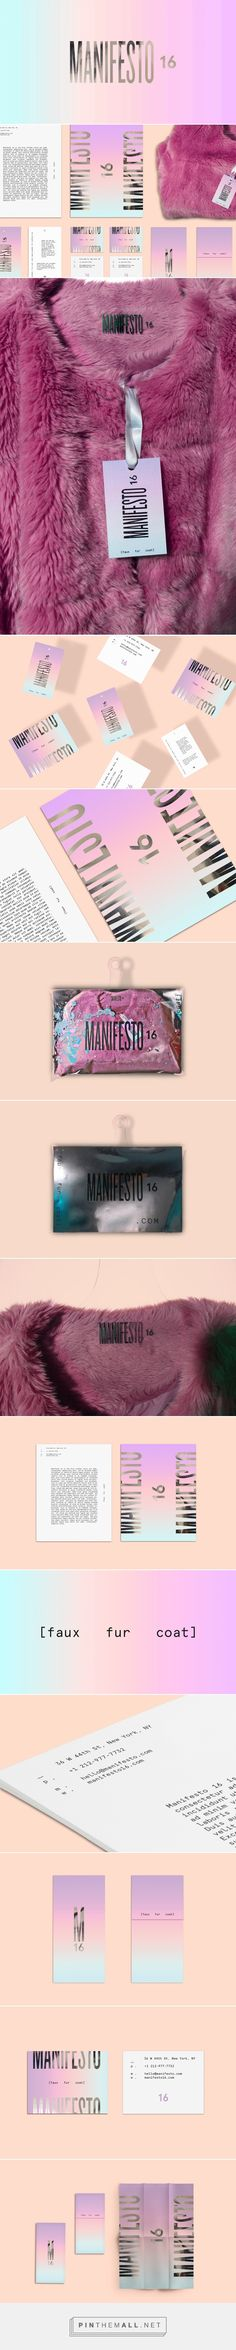 MANIFESTO 16 Fashion Branding by Karen Castellanos | Fivestar Branding Agency – Design and Branding Agency & Inspiration Gallery